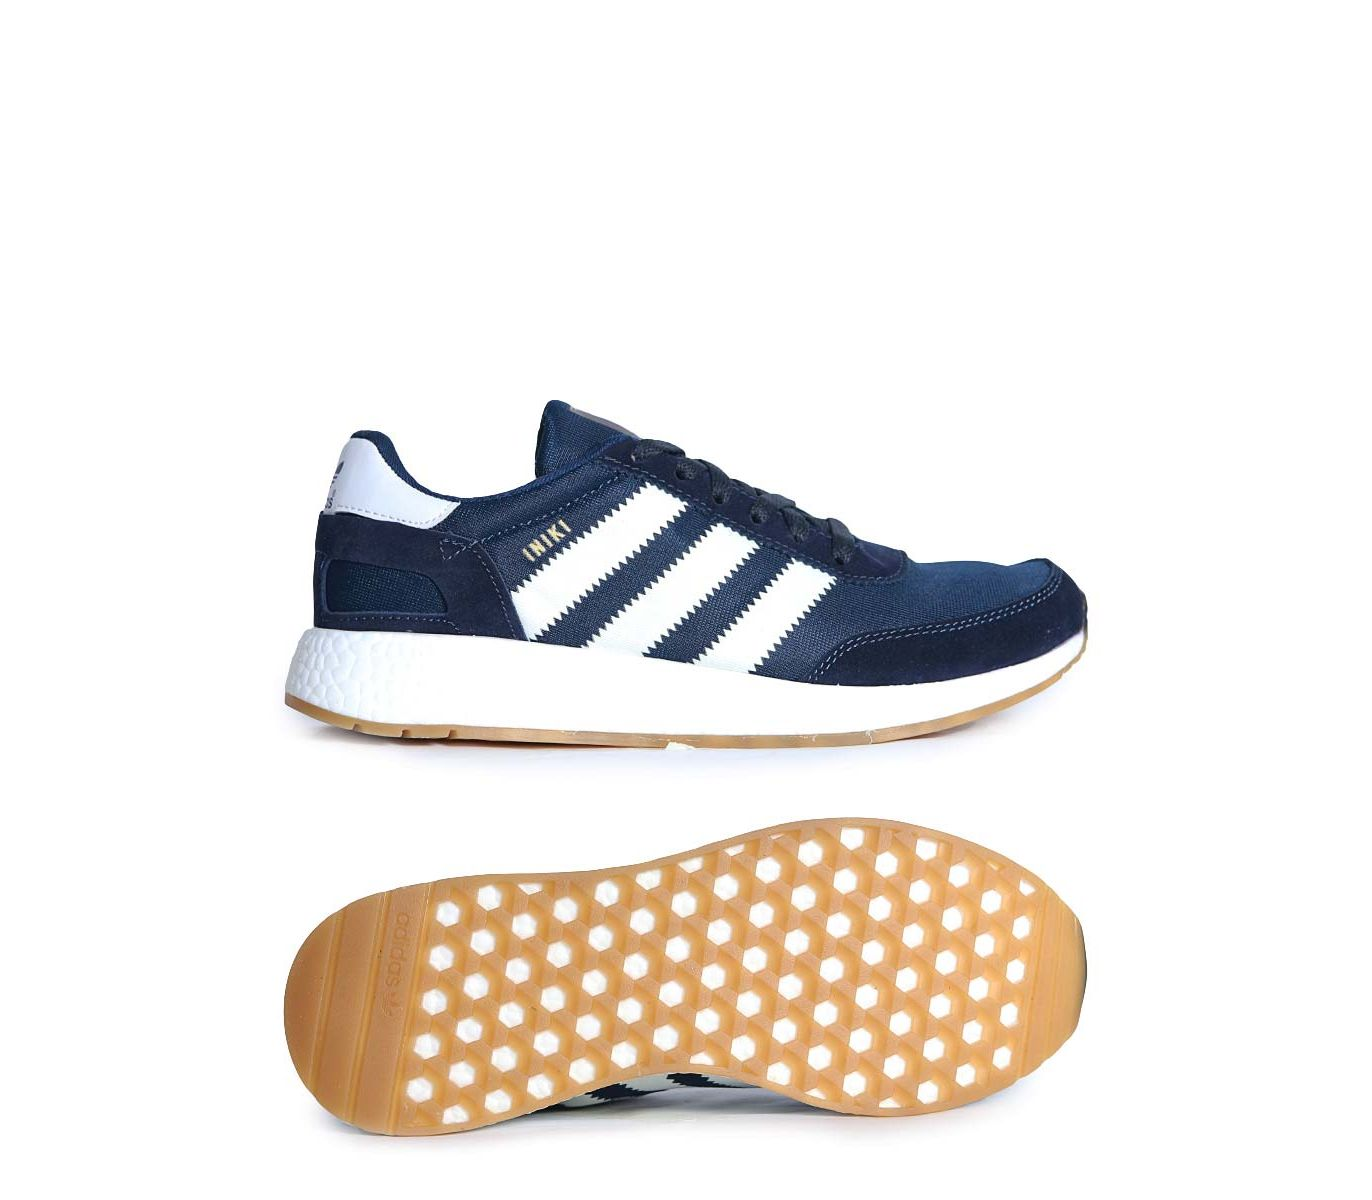 ed90bec2c6f6 Men s Fashion    Footwear    Lifestyle   Sports Shoes    Fasilite Iniki  Runner Ultra Boost - Navy Blue - Savers.pk - Everything you are looking for!